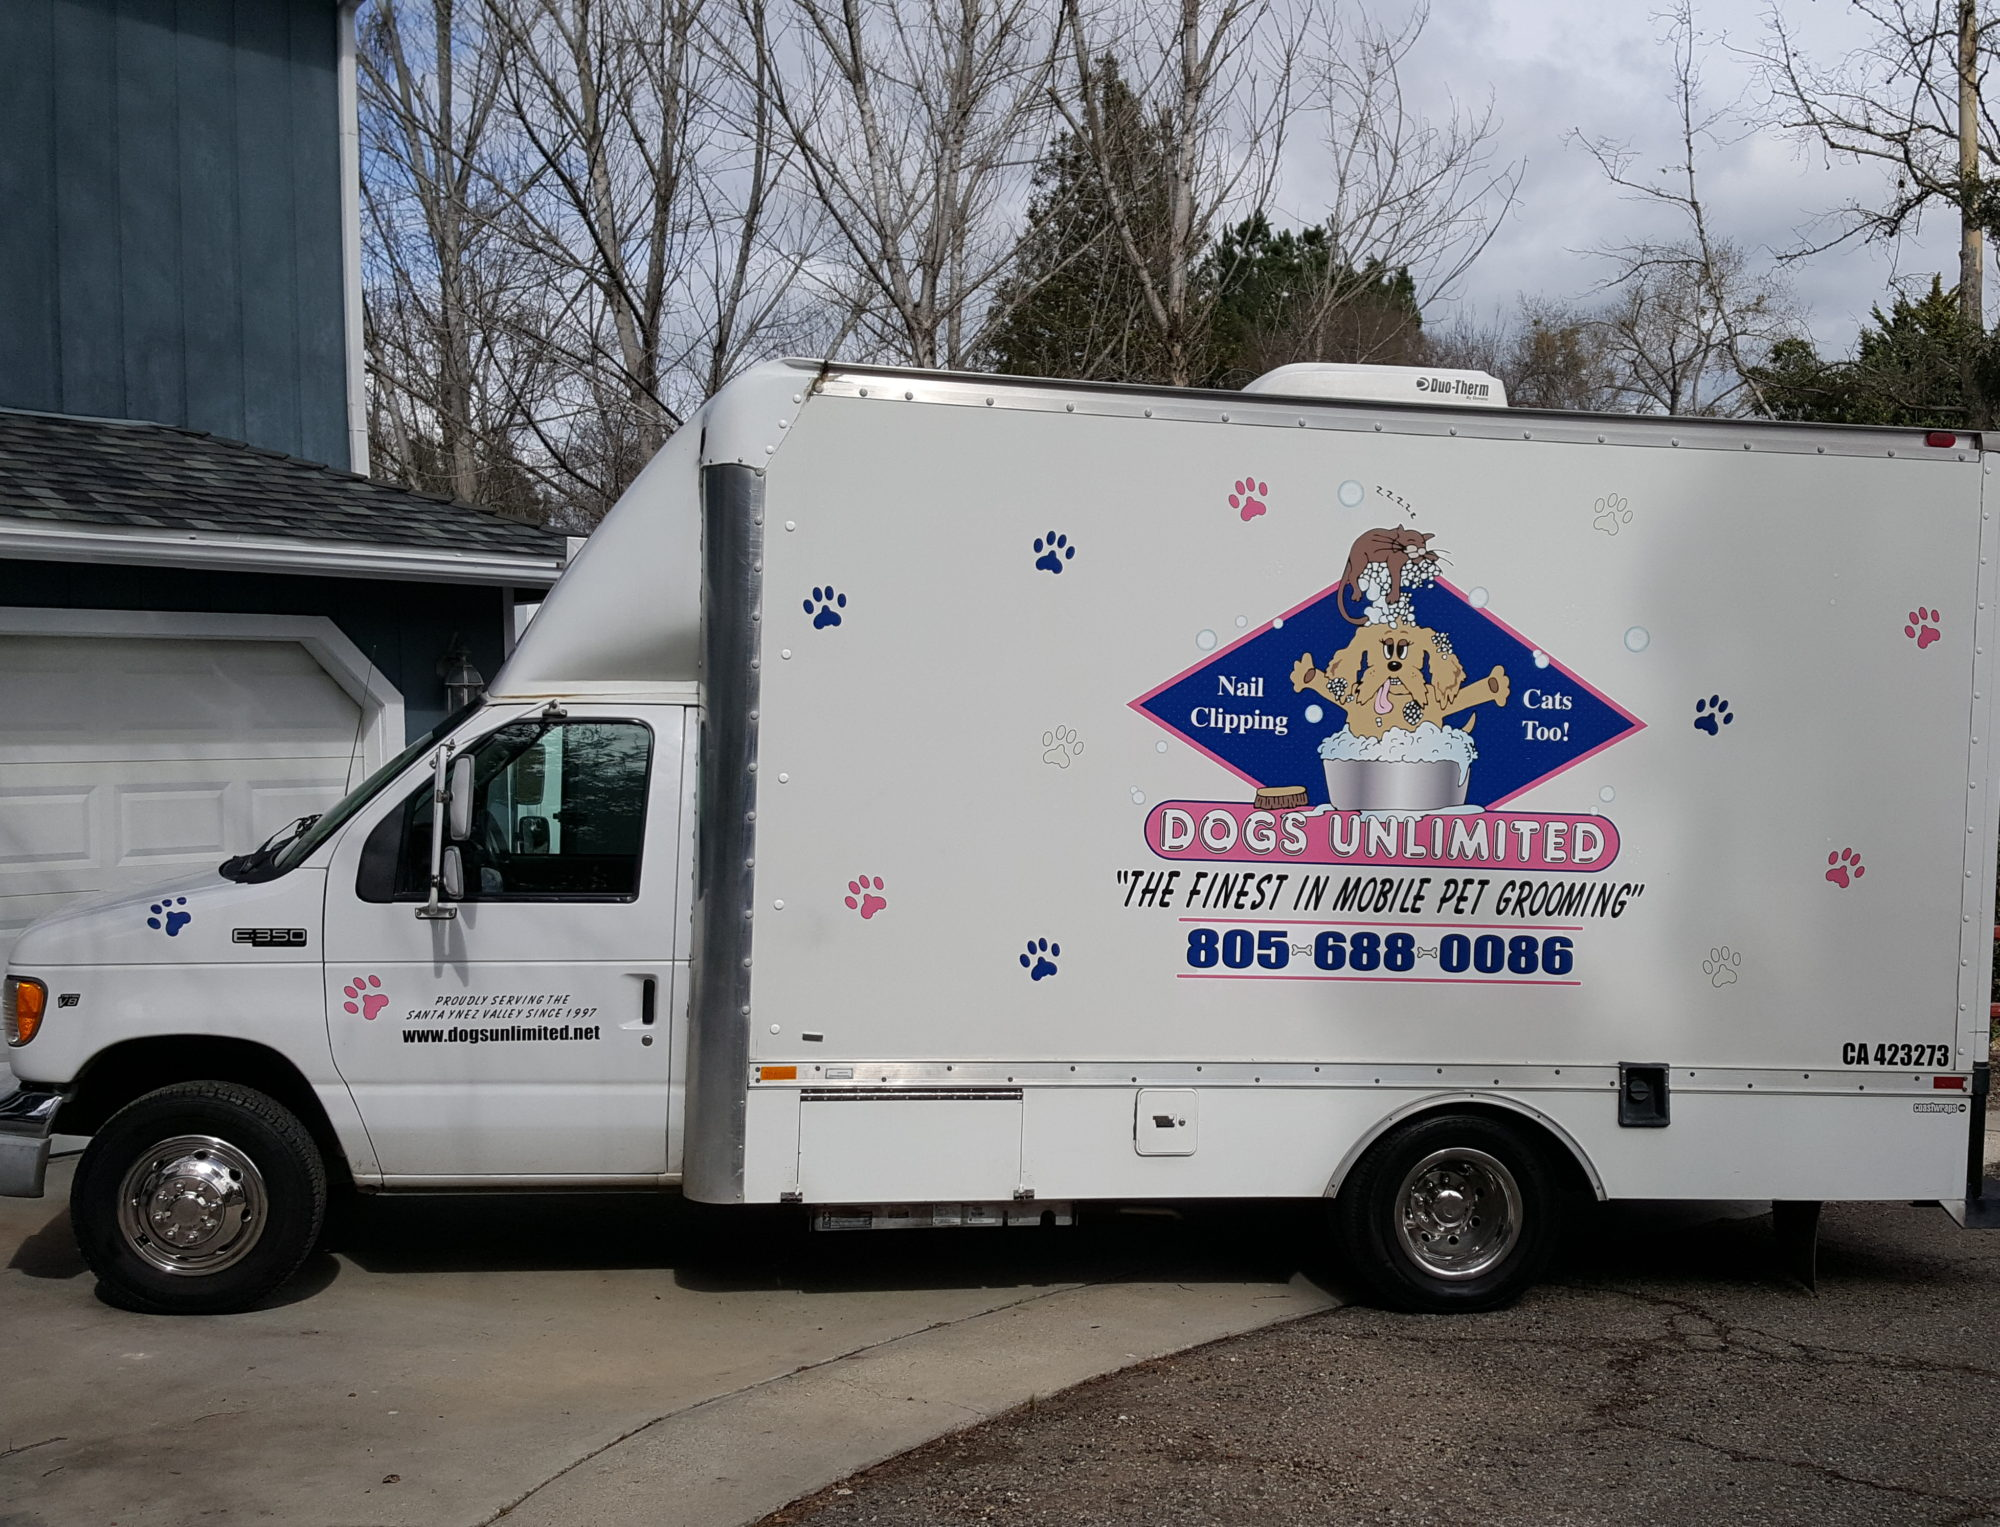 DOGS UNLIMITED MOBILE  PET GROOMING